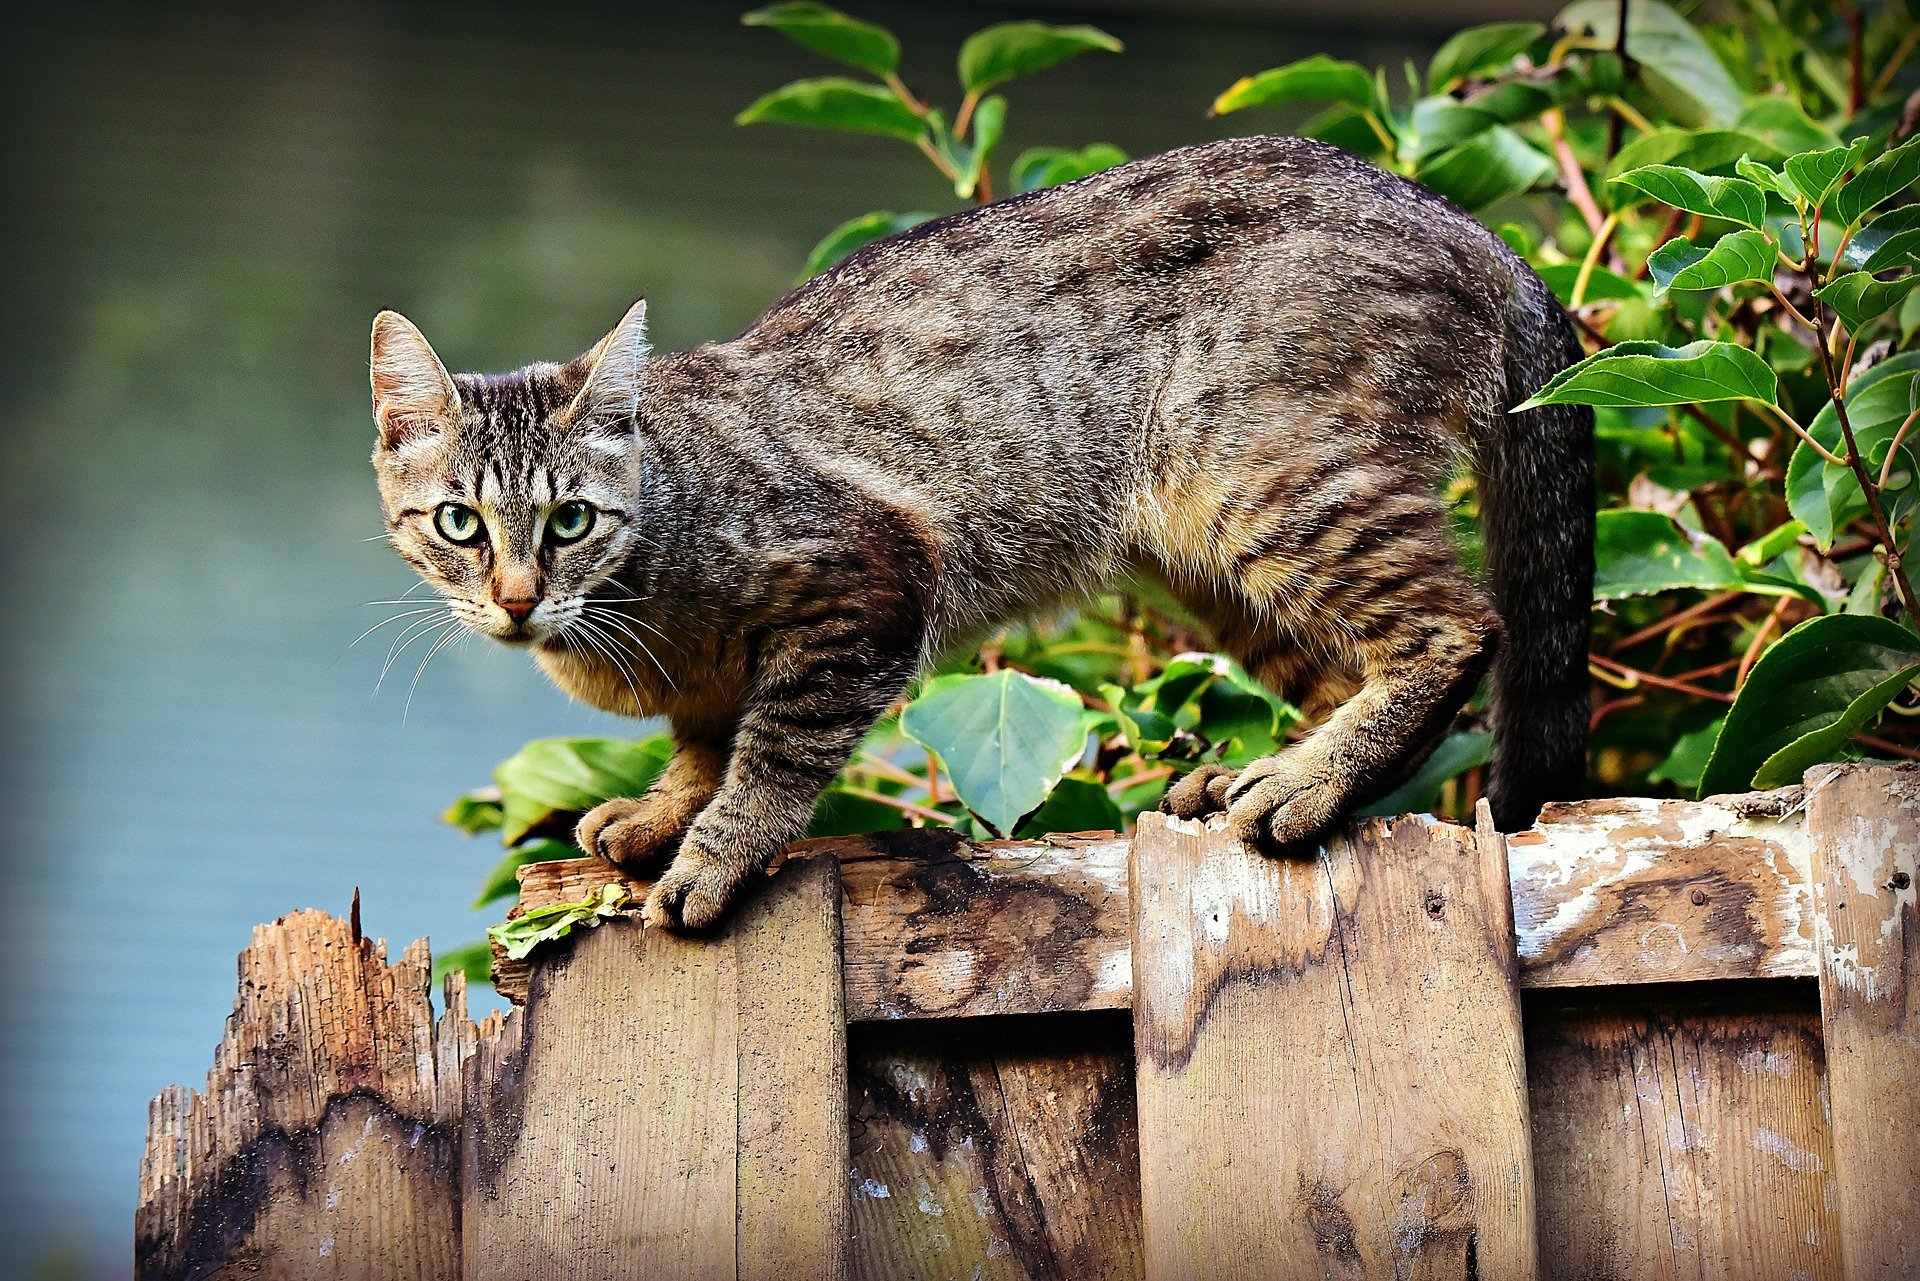 Cat crouching on a wooden fence staring at the camera | Photo: Pixabay/Mabel Amber